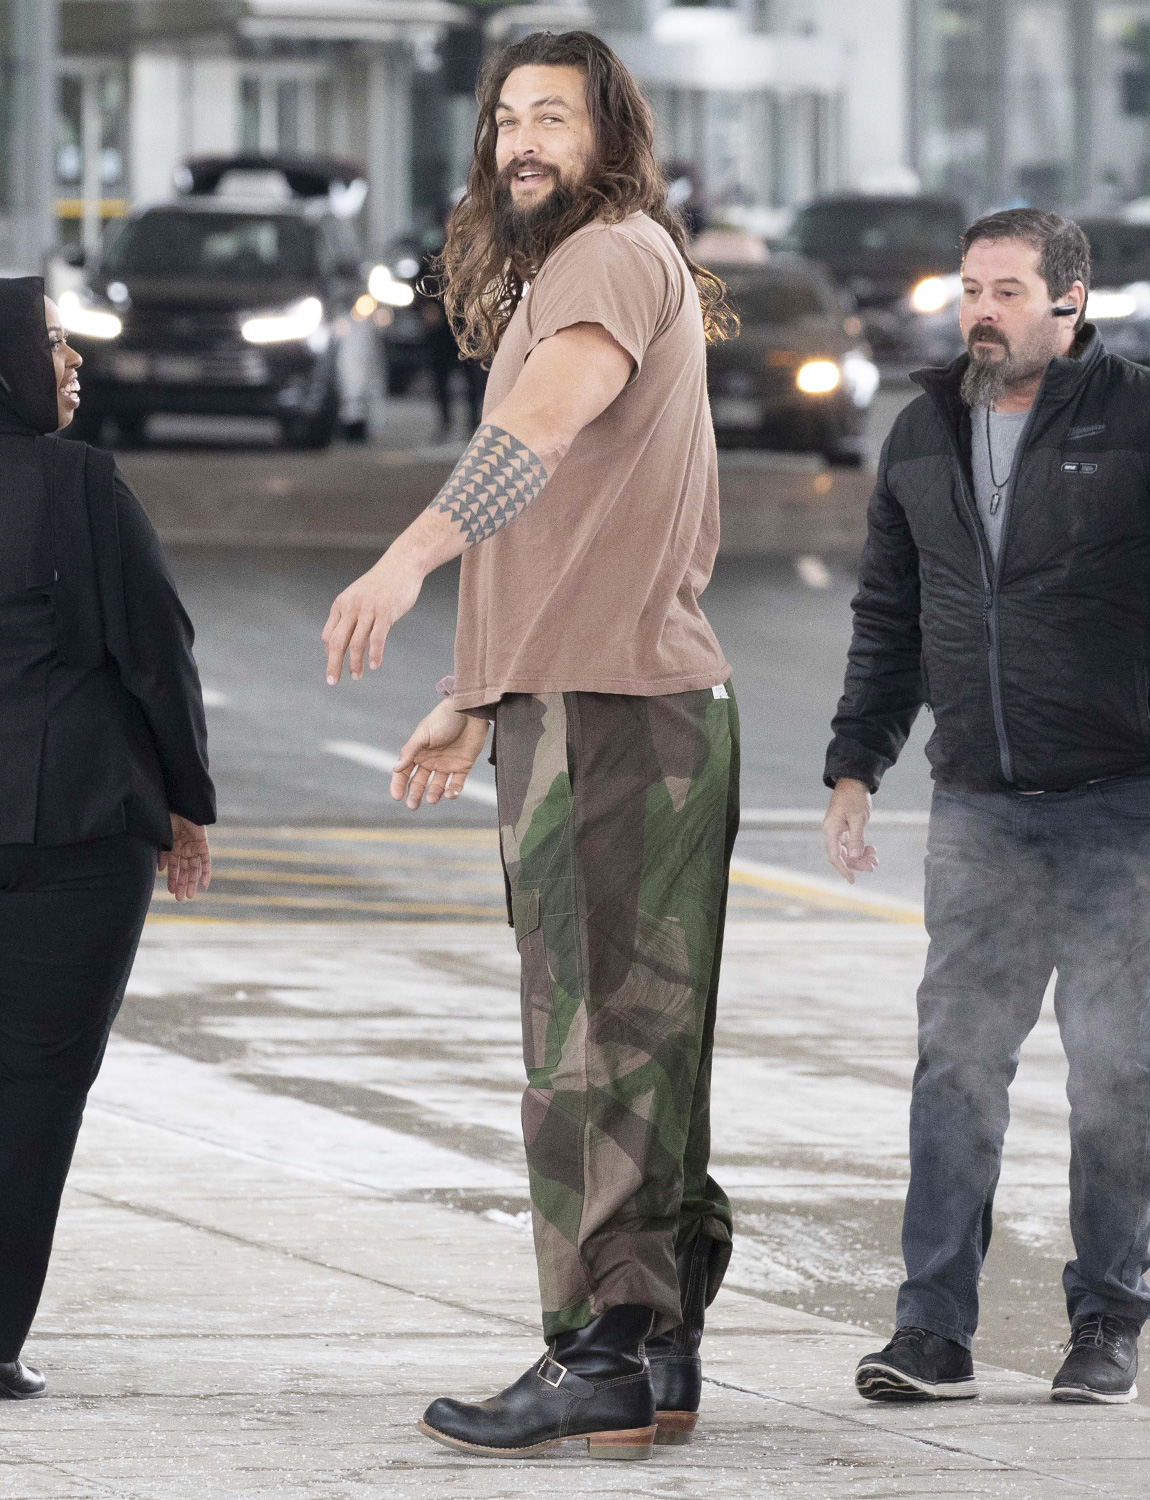 Jason Momoa star of Aquaman and Game of Thrones spotted arriving in Toronto to begin working on the second season of the TV series 'See